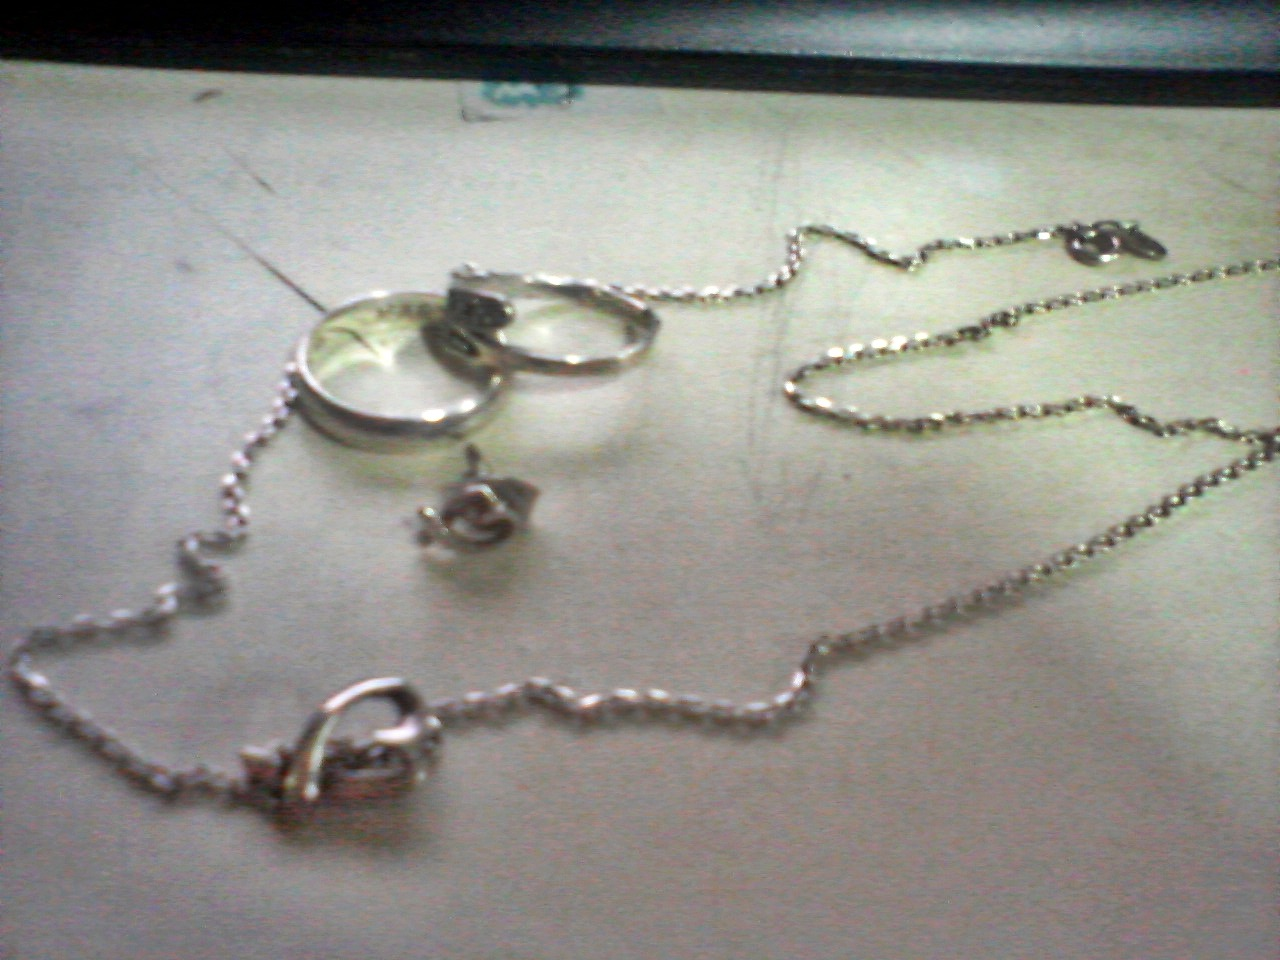 "My pieces of jewelry that I do not remove from my body— ever! That necklace is from Marty :) He gave that to me last July 16, 2010. I accidentally broke the original necklace of that heart pendant one day so he gave me a replacement without a pendant so I could use the same pendant he gave me :) The earring— yes, earring nalang, is from Marty too :) Match sa necklace, if you could notice na same ang form ng earring sa pendant. If you are asking why earring nalang siya kasi nawala ang pair niya last Thursday lang. :( I just notices when I touched my right ear na I was not wearing an earring there. I still wear that one until now— without its pair. Parang chuy lang. Haha! The two rings there stay at my right hand. The plain silver ring is a Christmas gift from Marty. Actually it has a ""MARTY"" engraved on on the inner portion of the ring. We had match rings. His has a ""FHOEBE"" on the inner portion too. Sadly, he lost his ring one time when he forgot where he put it in the gym. :